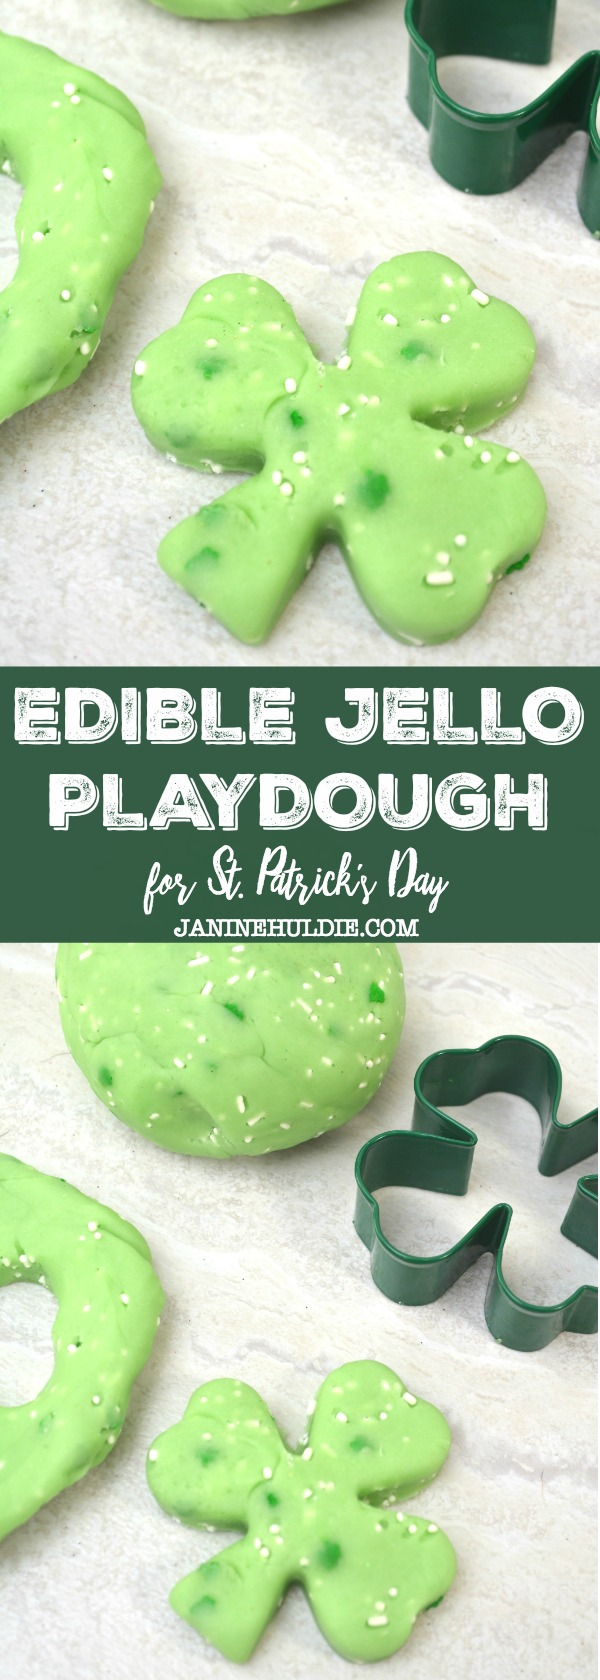 Green Edible Jello Playdough for St. Patrick's Day